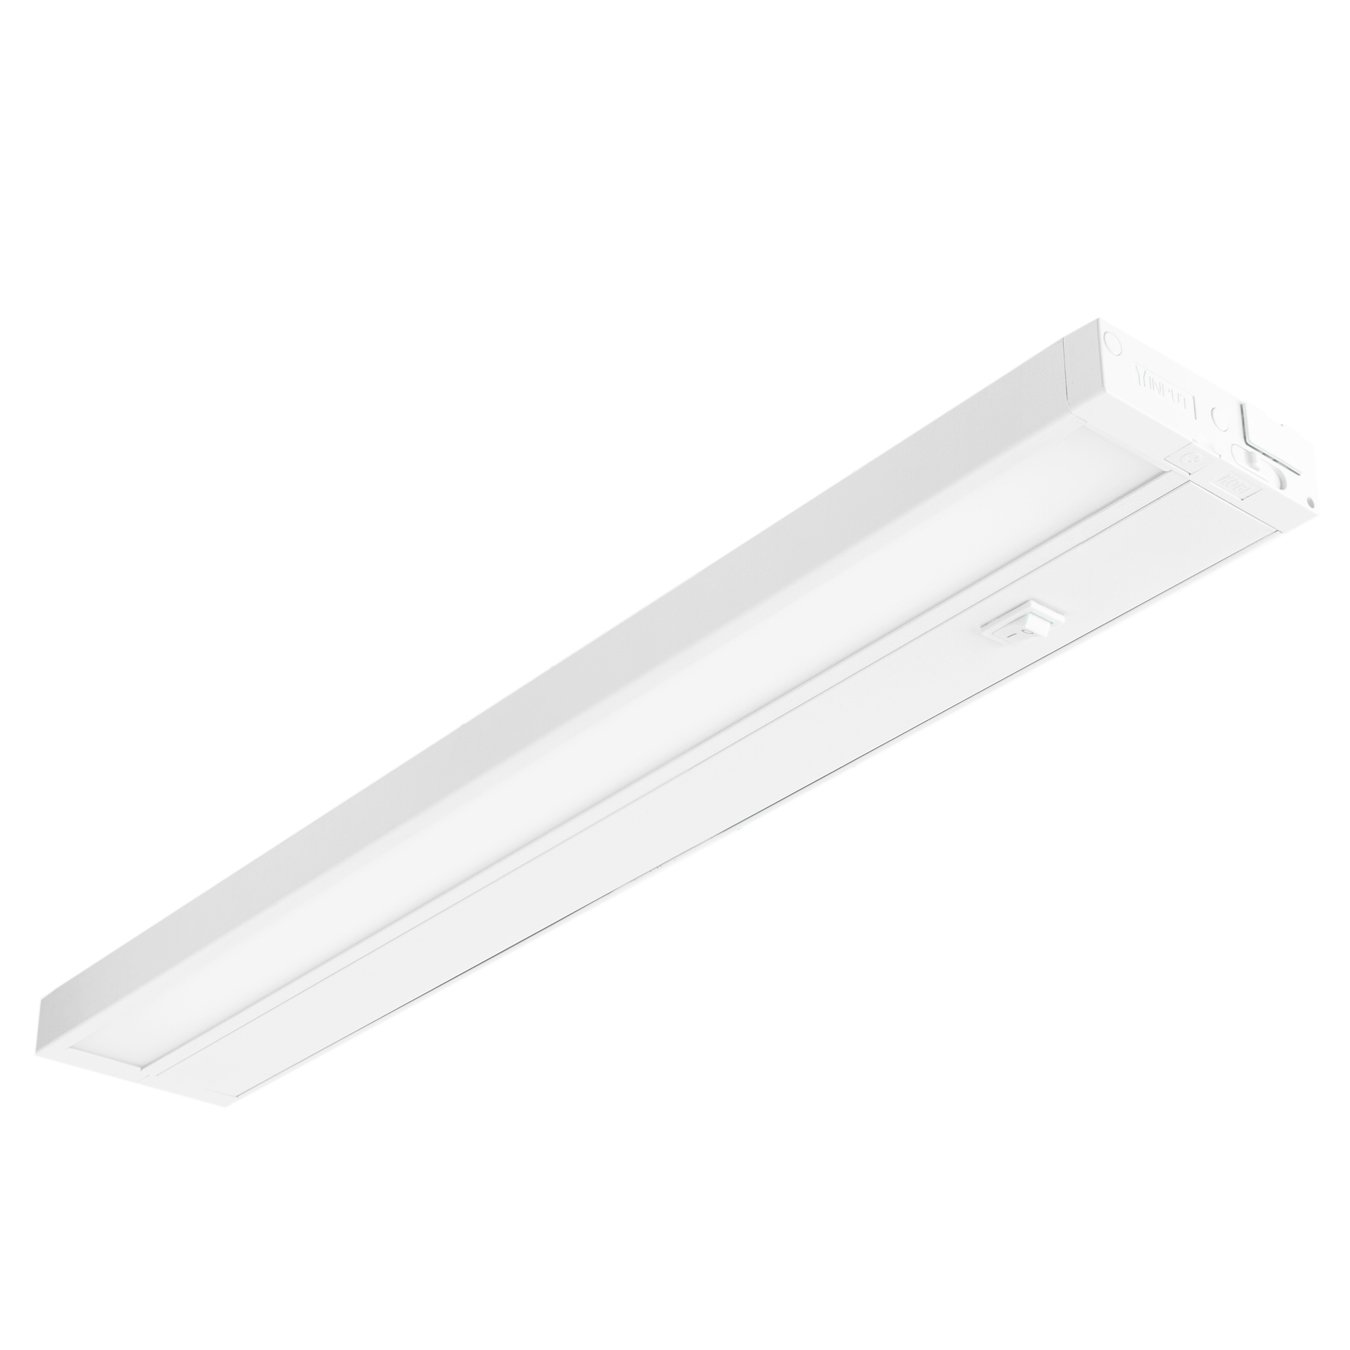 2 Pack LED Under Cabinet Lighting Fixture 14'' White 8 Watts Dimmable 4000K 500L 120V by USA-LED